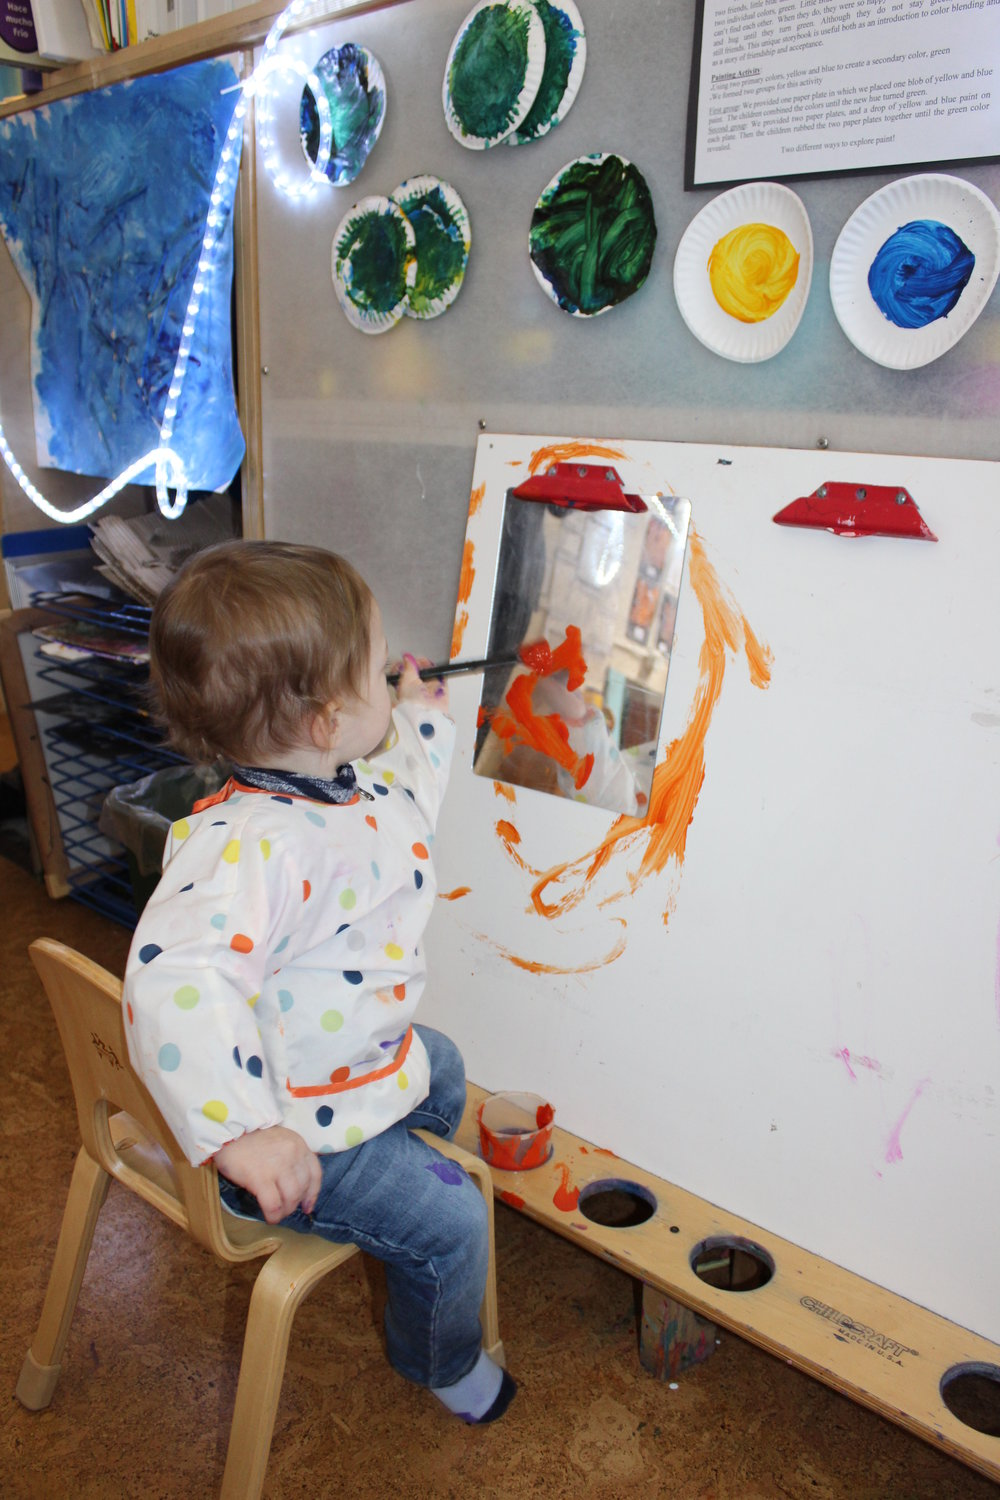 Grayson is feeling at ease in his classroom environment and interacting with different materials.       This fun activity helps children to experience a different form of painting on paper. It allows them to explore, experiment and discover that the composition of paint appears differently on each surface they paint on.  Mirror paper makes the painting shimmer, and the metallic surface creates a shiny and slippery appearance.  Each child projected different strokes on the mirror using paintbrushes.  As they see their reflection, they also see the different strokes he/she has painted.